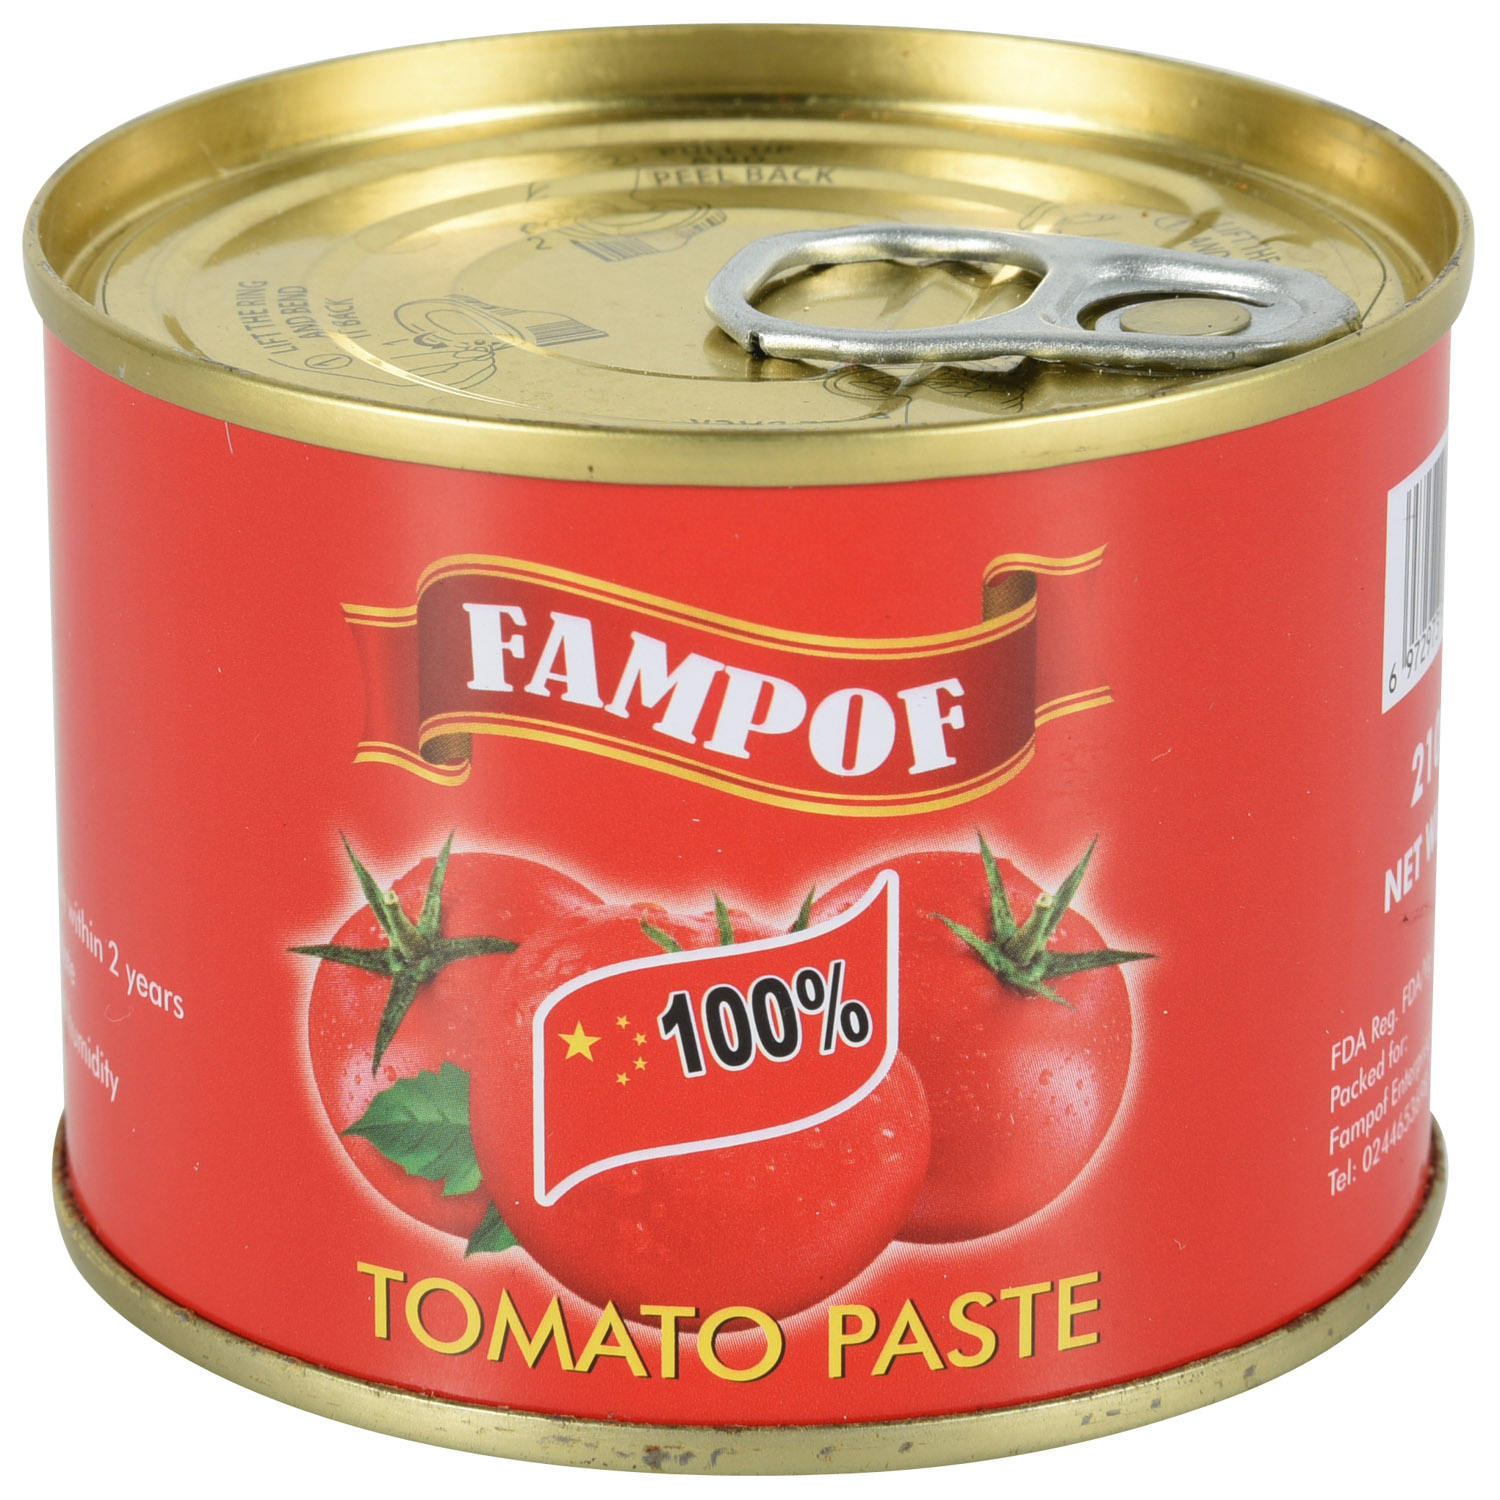 canned tomato paste tomato 28-30% brix,tinned tomato paste 210gx48tins